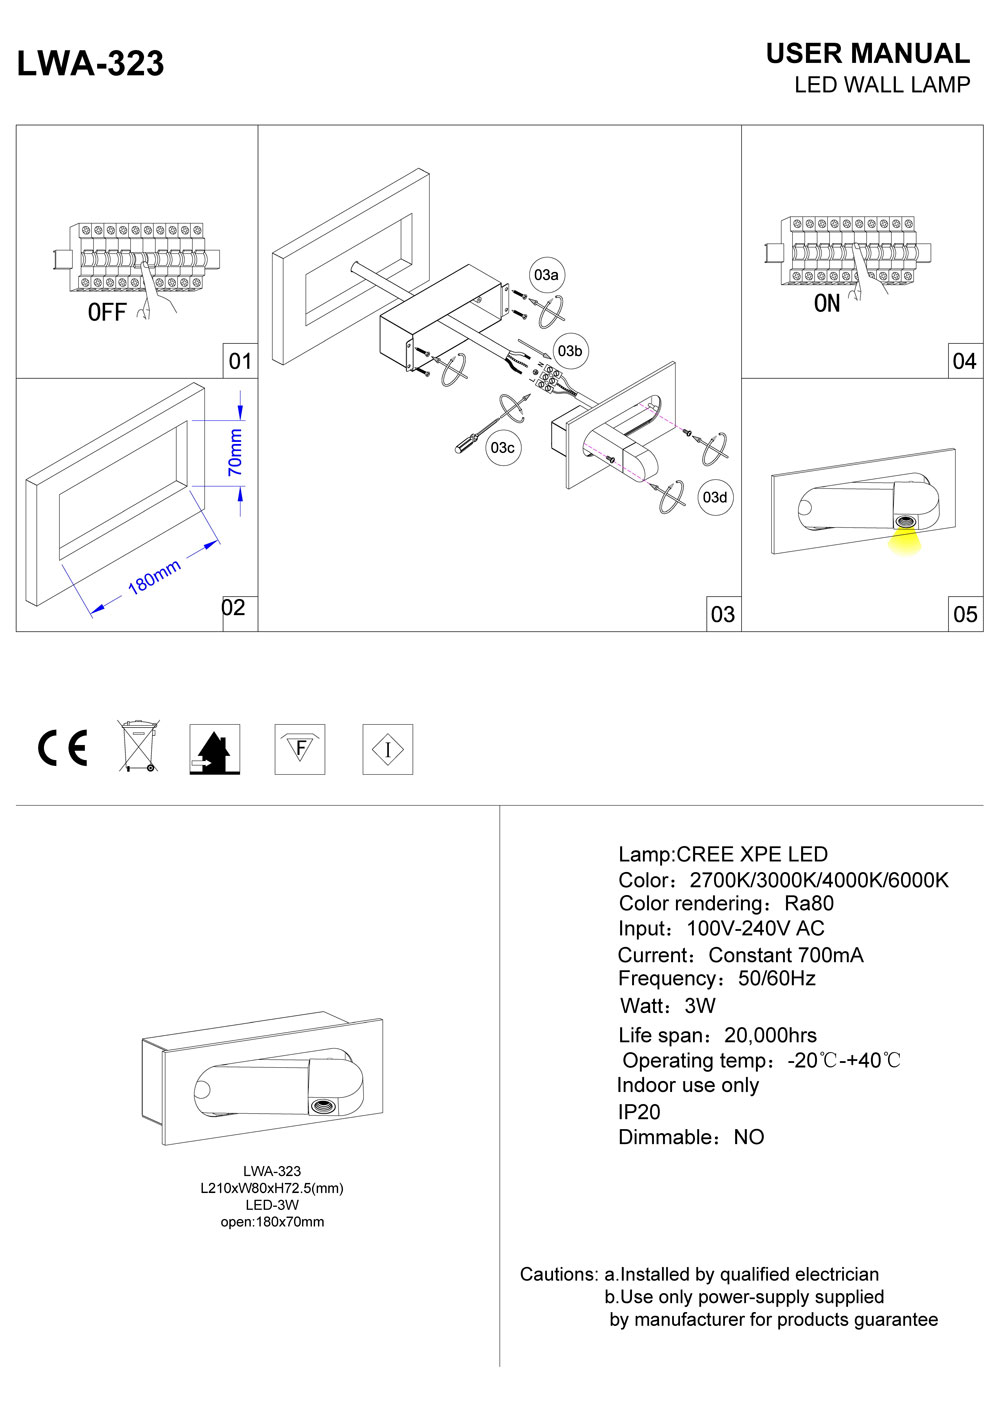 LWA-323 3 watt wall mounted recessed LED reading light installation guide